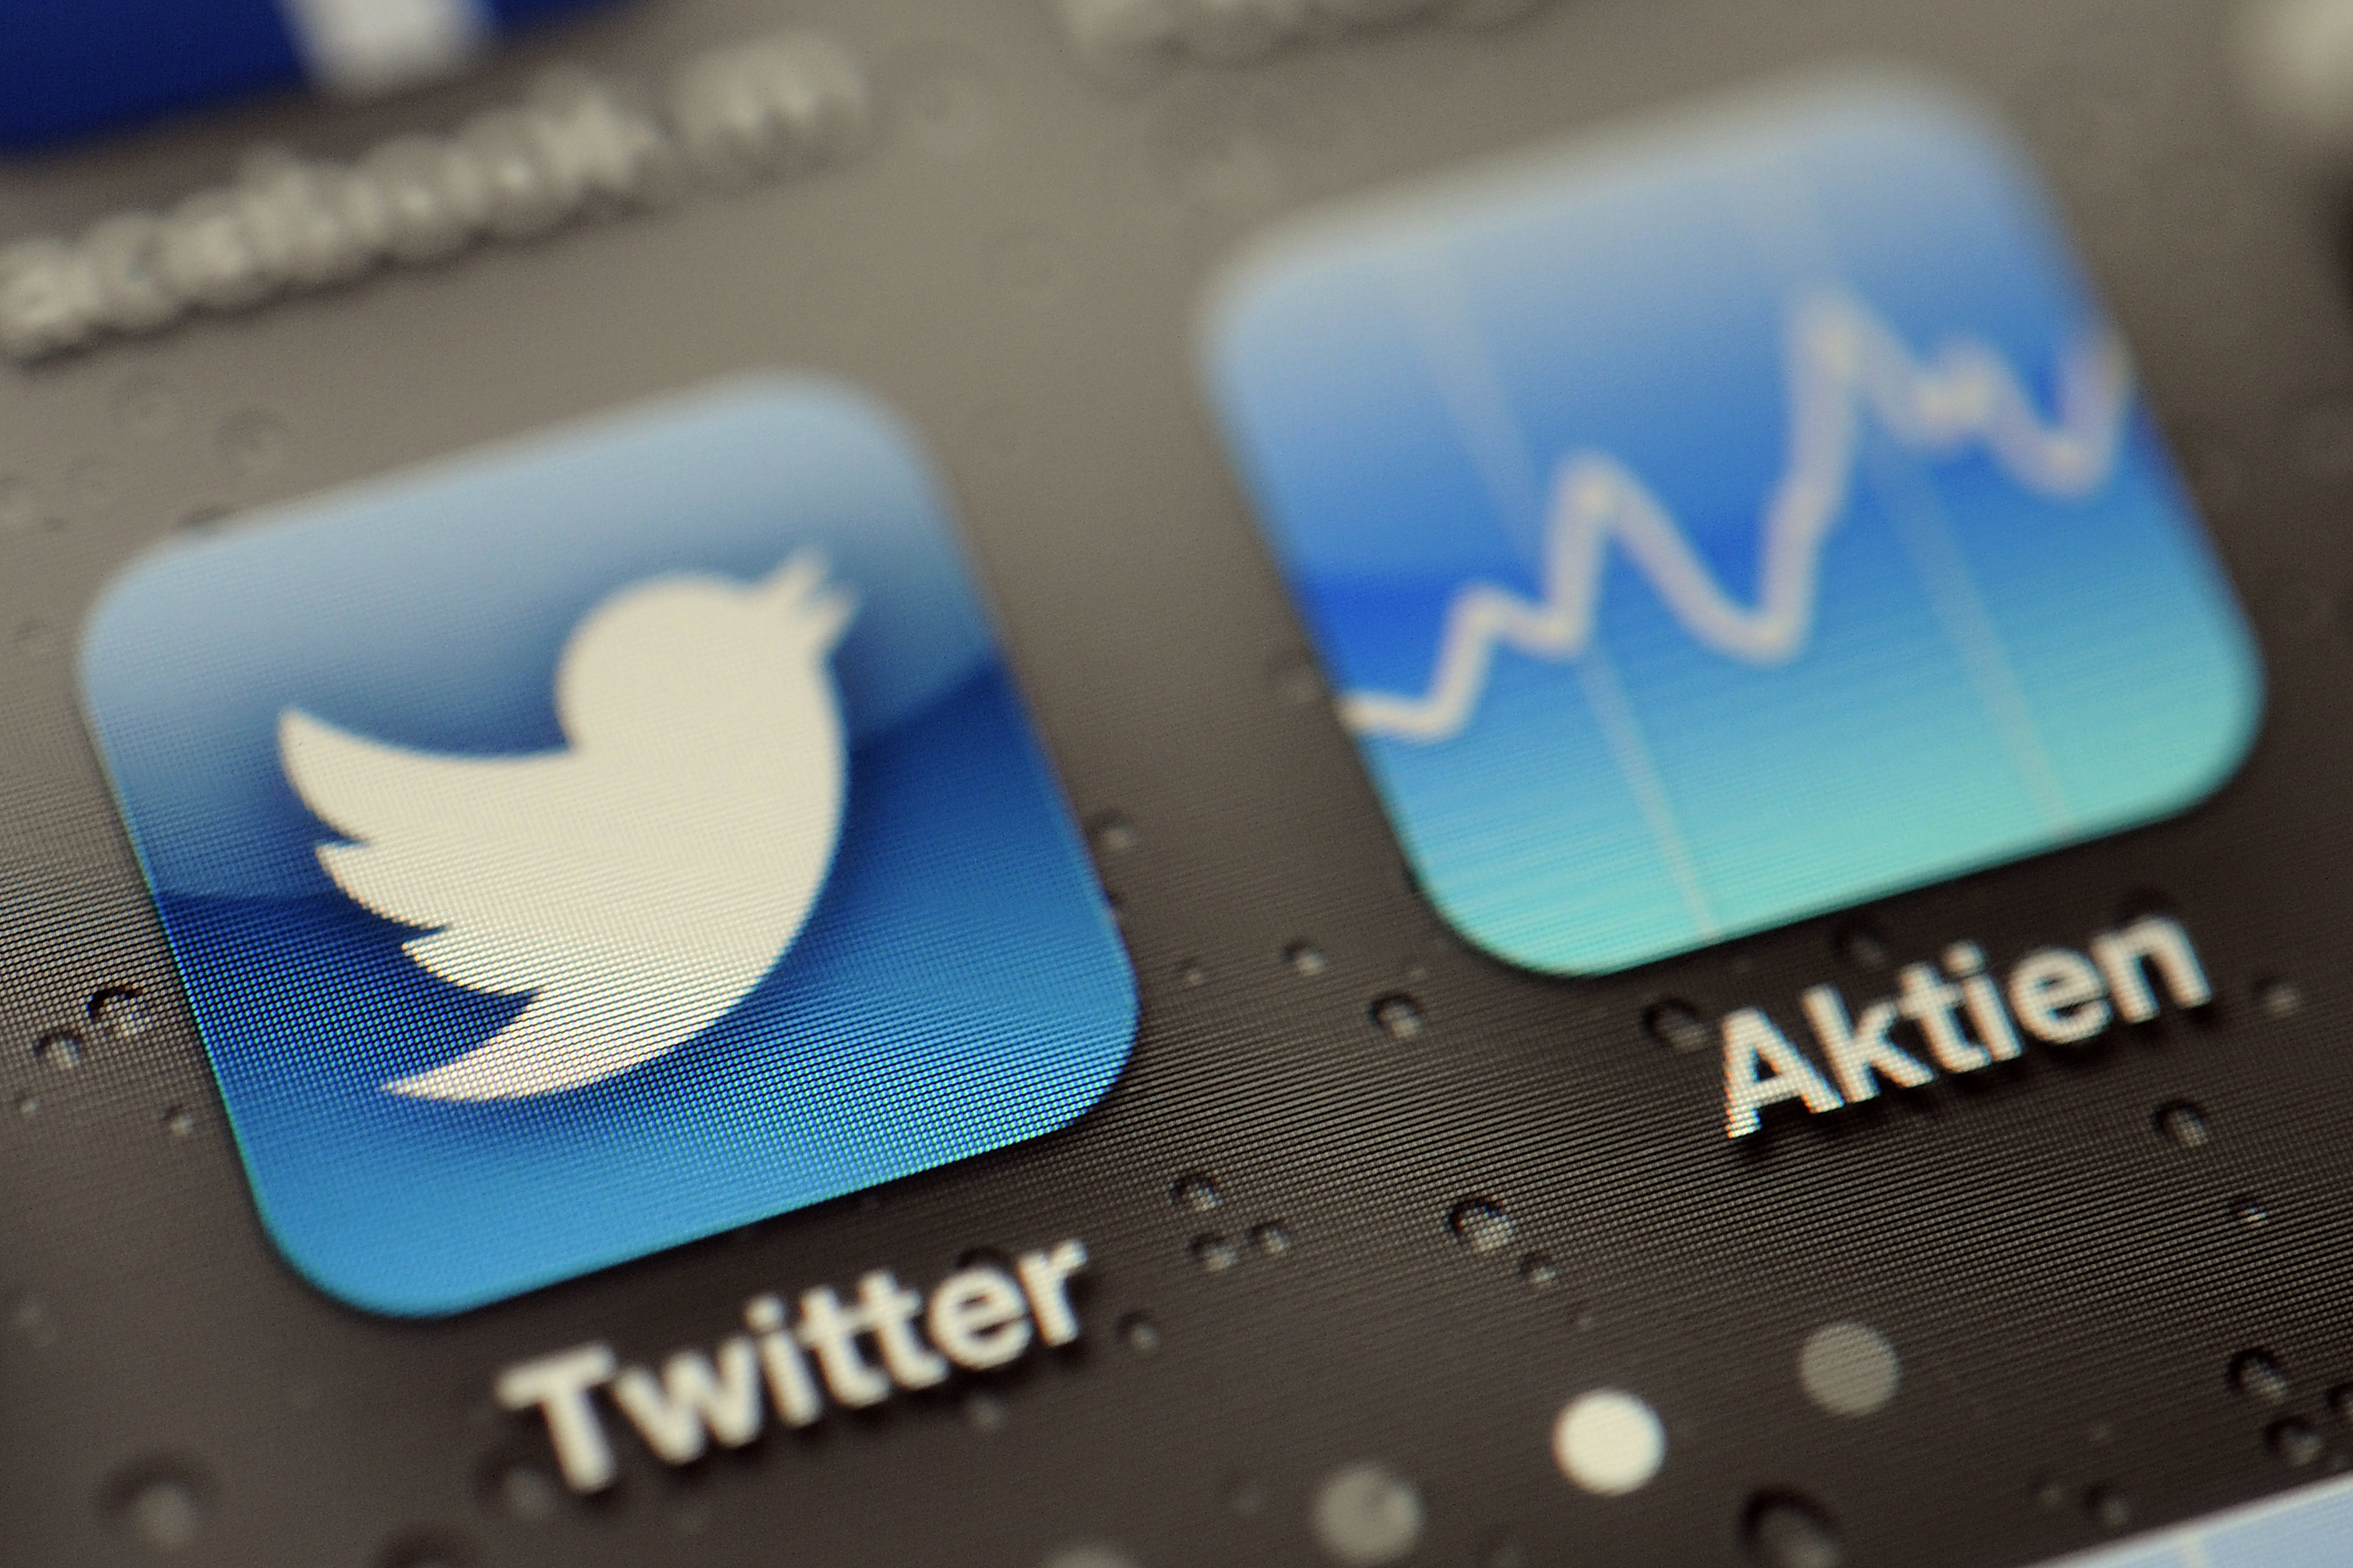 Twitter hacks, Tanner triggers, tragic losses, and more